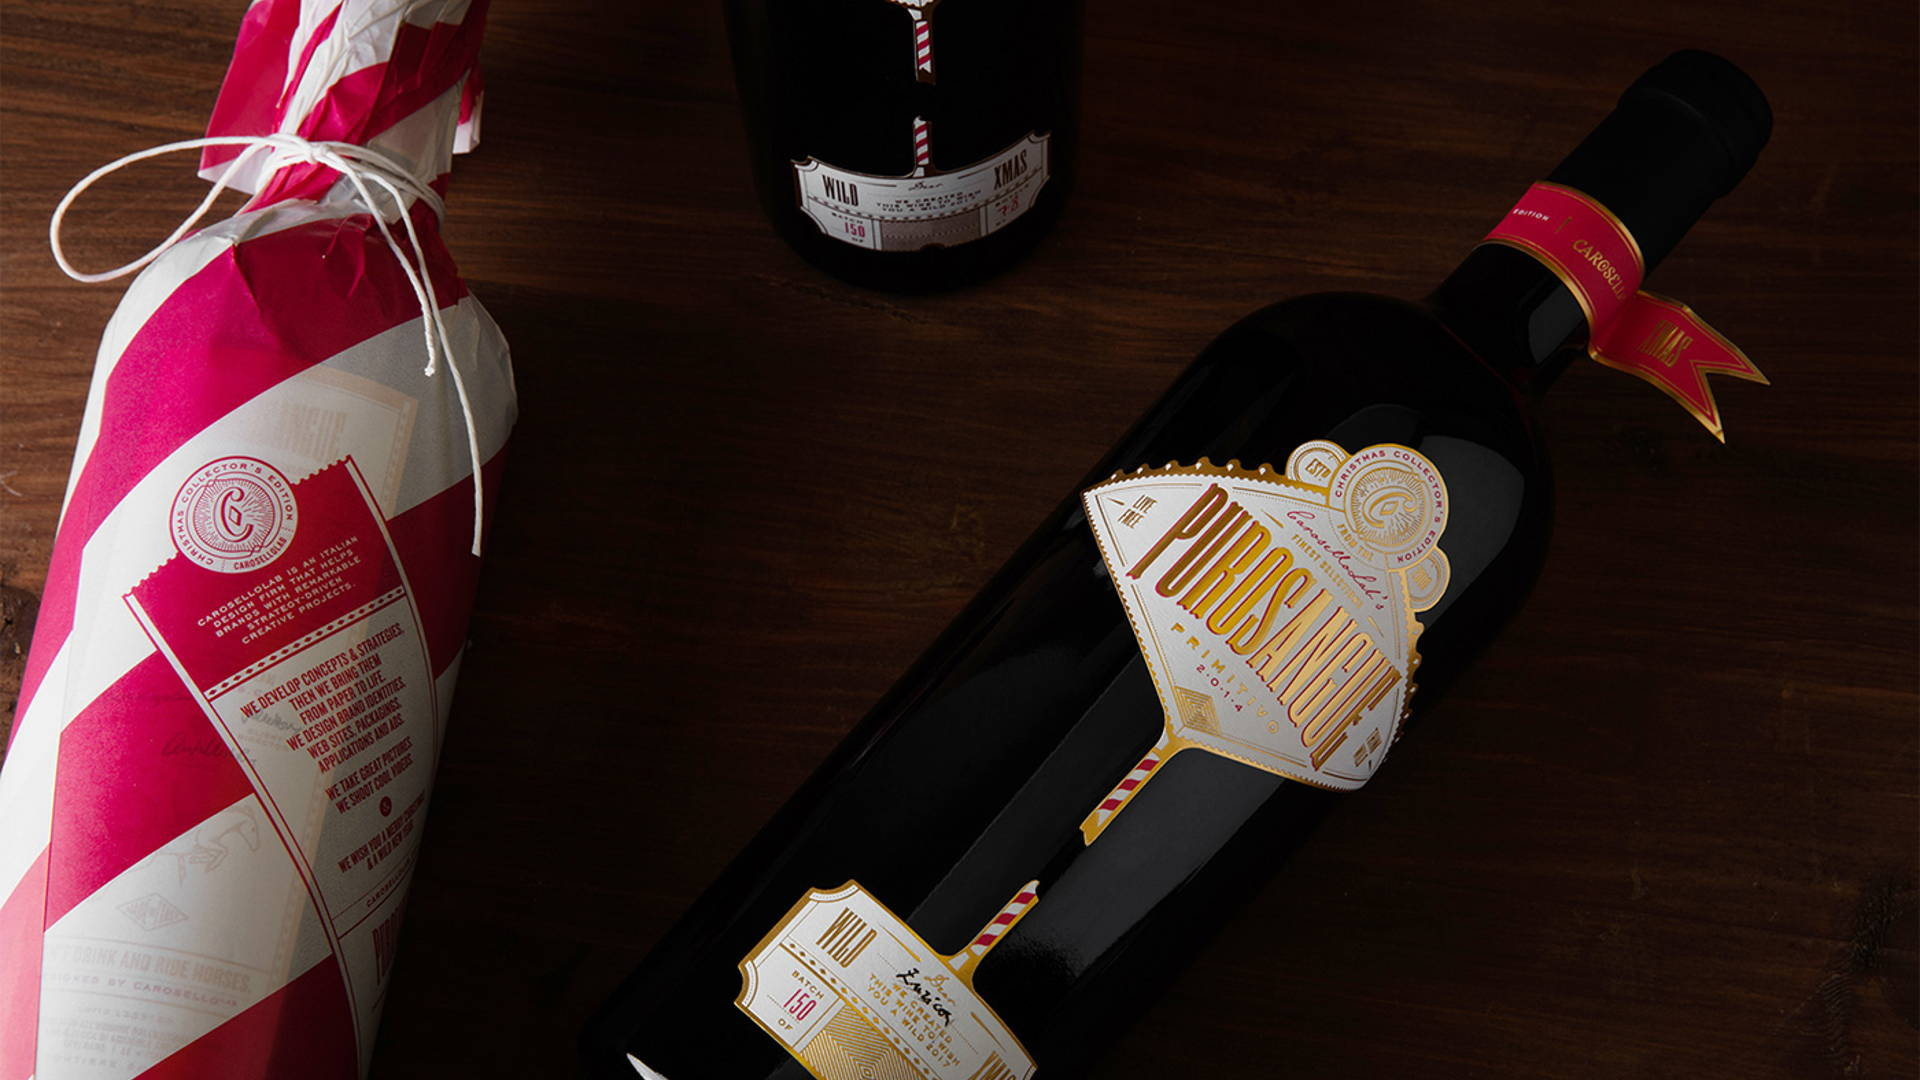 Wine Christmas Packaging.Live Free And Think Wild With Regal Packaging For Purosangue